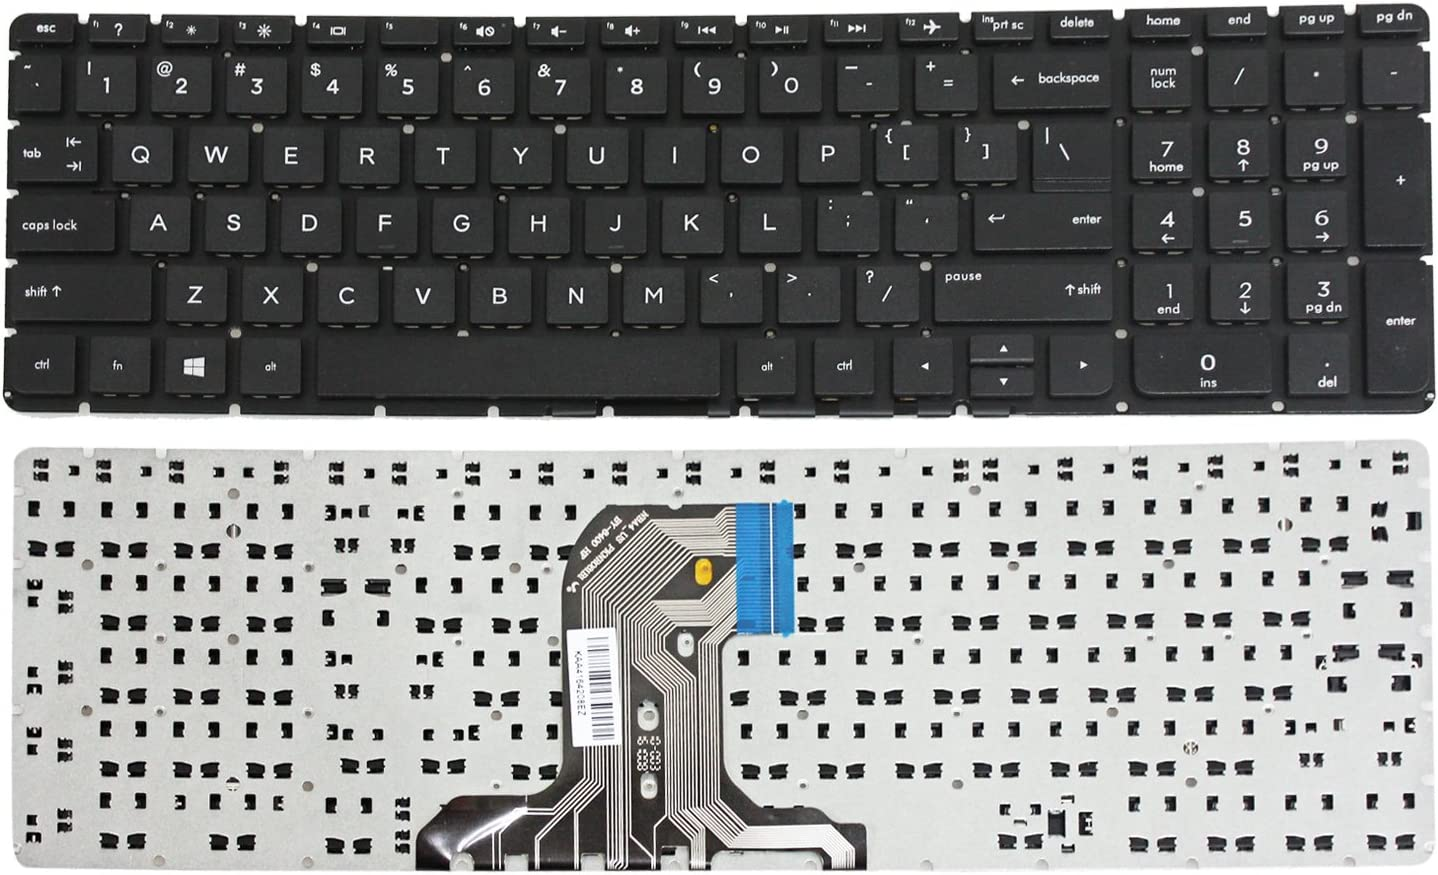 GinTai Laptop US Keyboard Replacement for HP 15-af131ca 15-af131dx 15-af135nr 15-af073nr 15-af074nr 15-af075nr 15-af113cl Without Frame